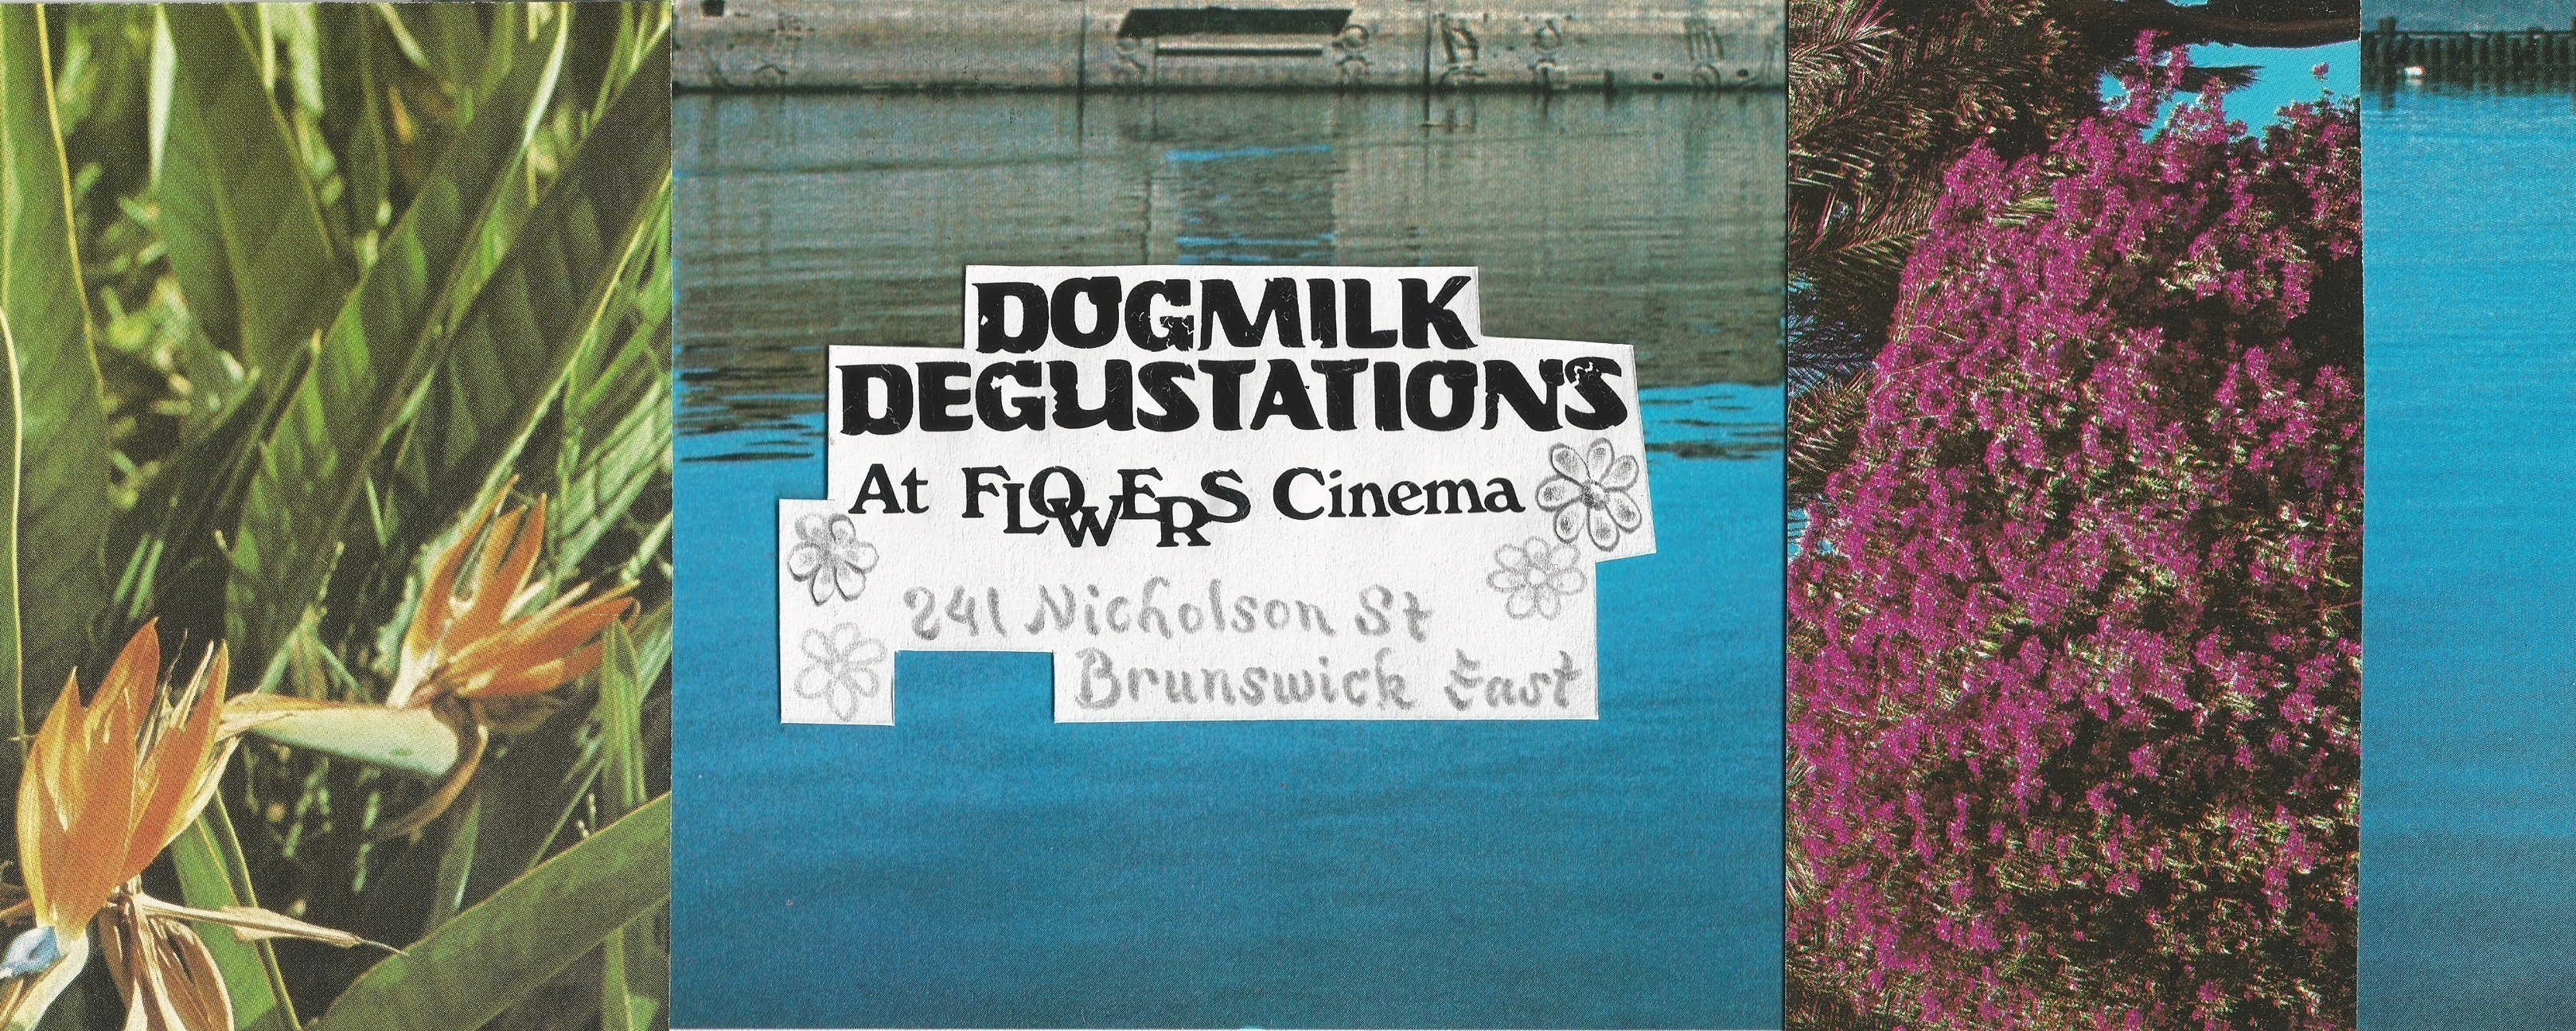 Dogmilk Degustations 3